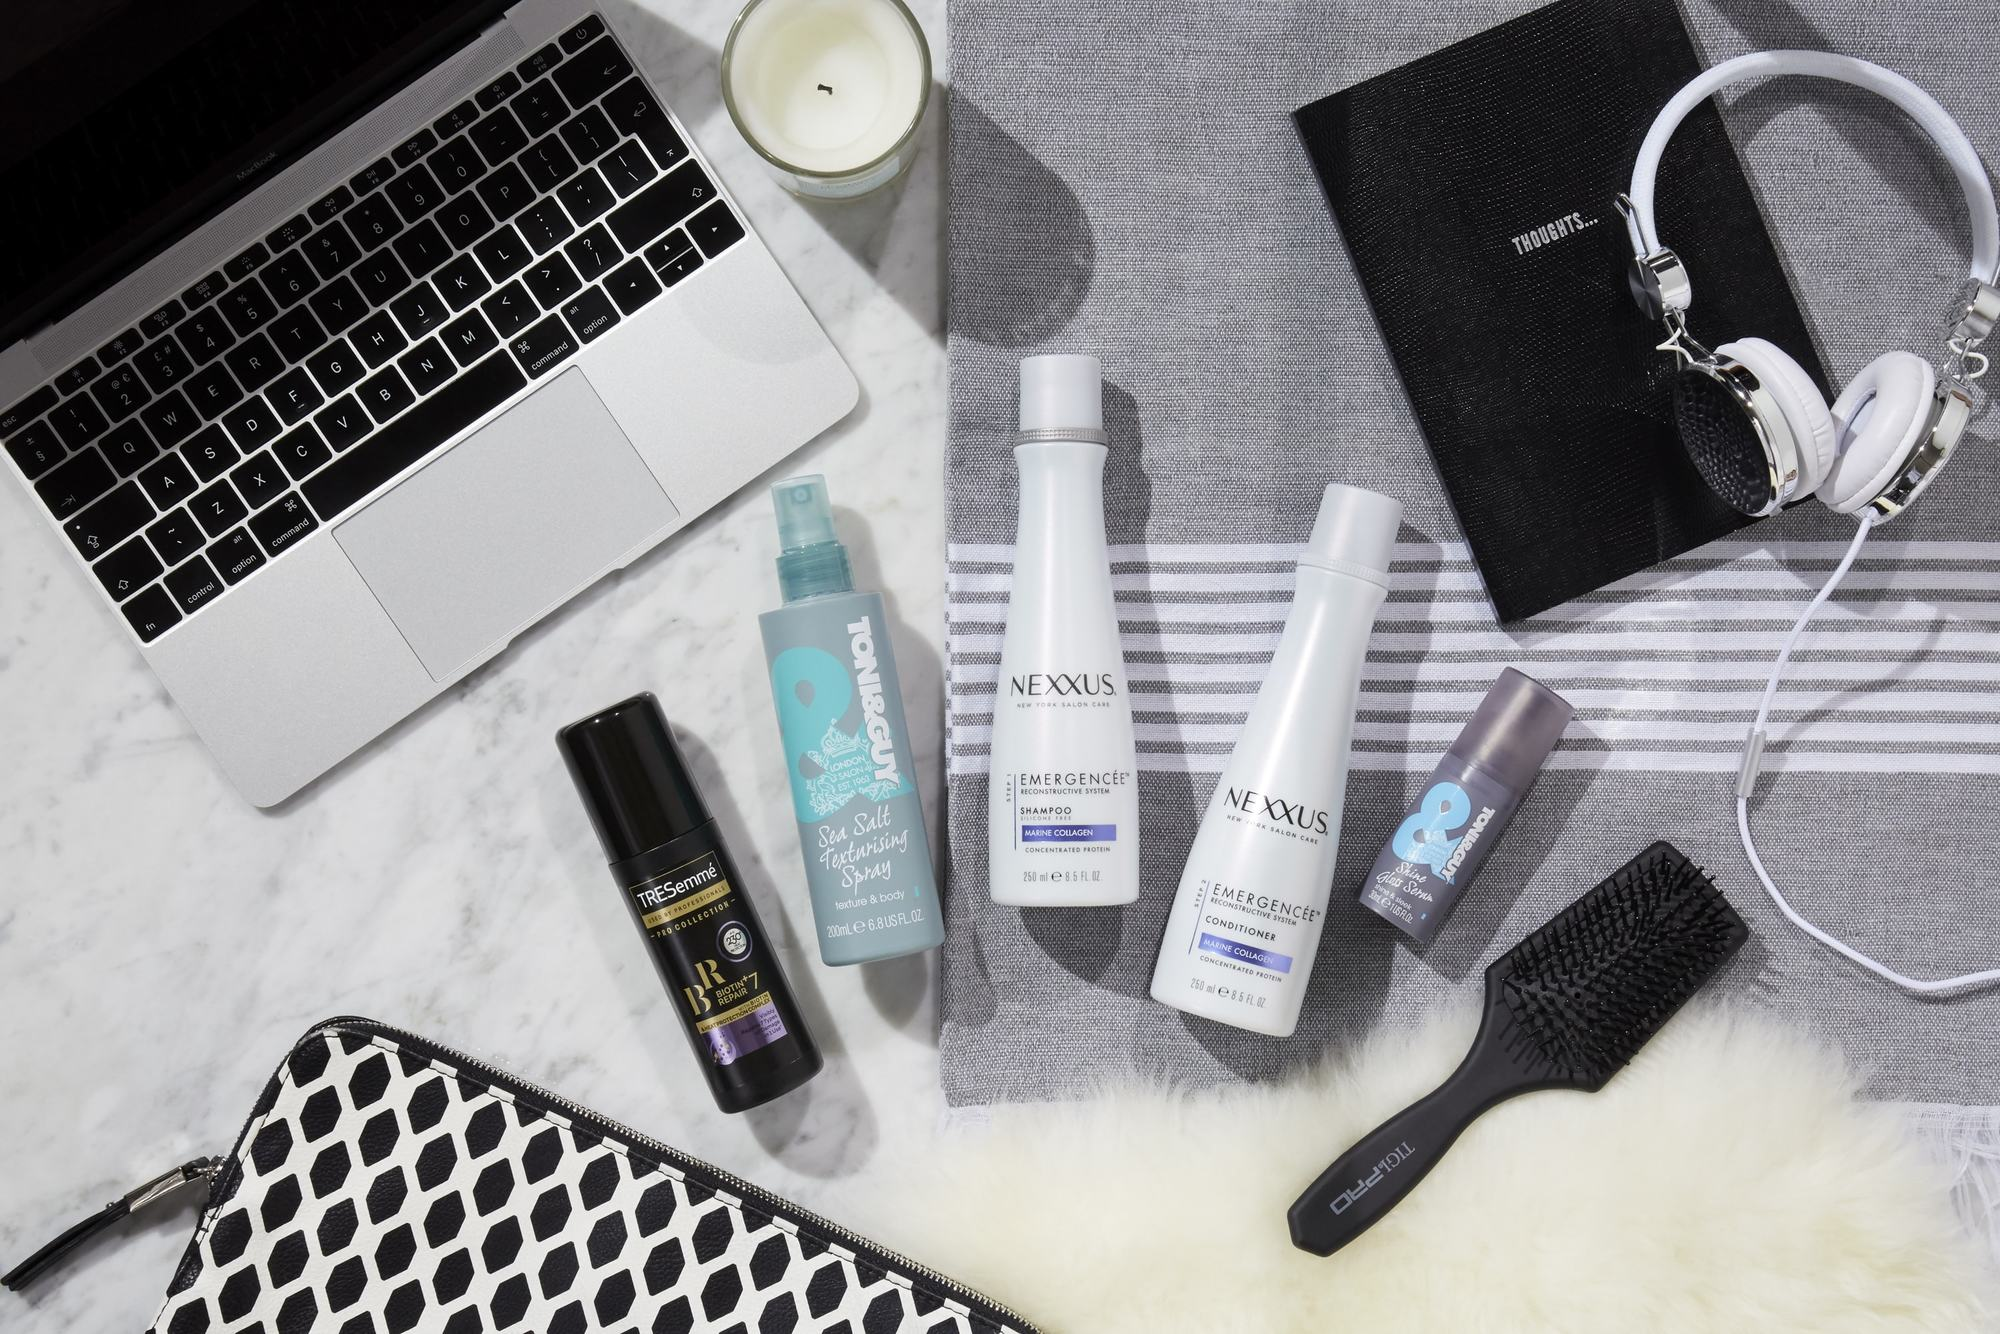 How to Marie Kondo your hair: Flat lay of Unilever products, including Nexxus, Tresemme, Toni&Guy